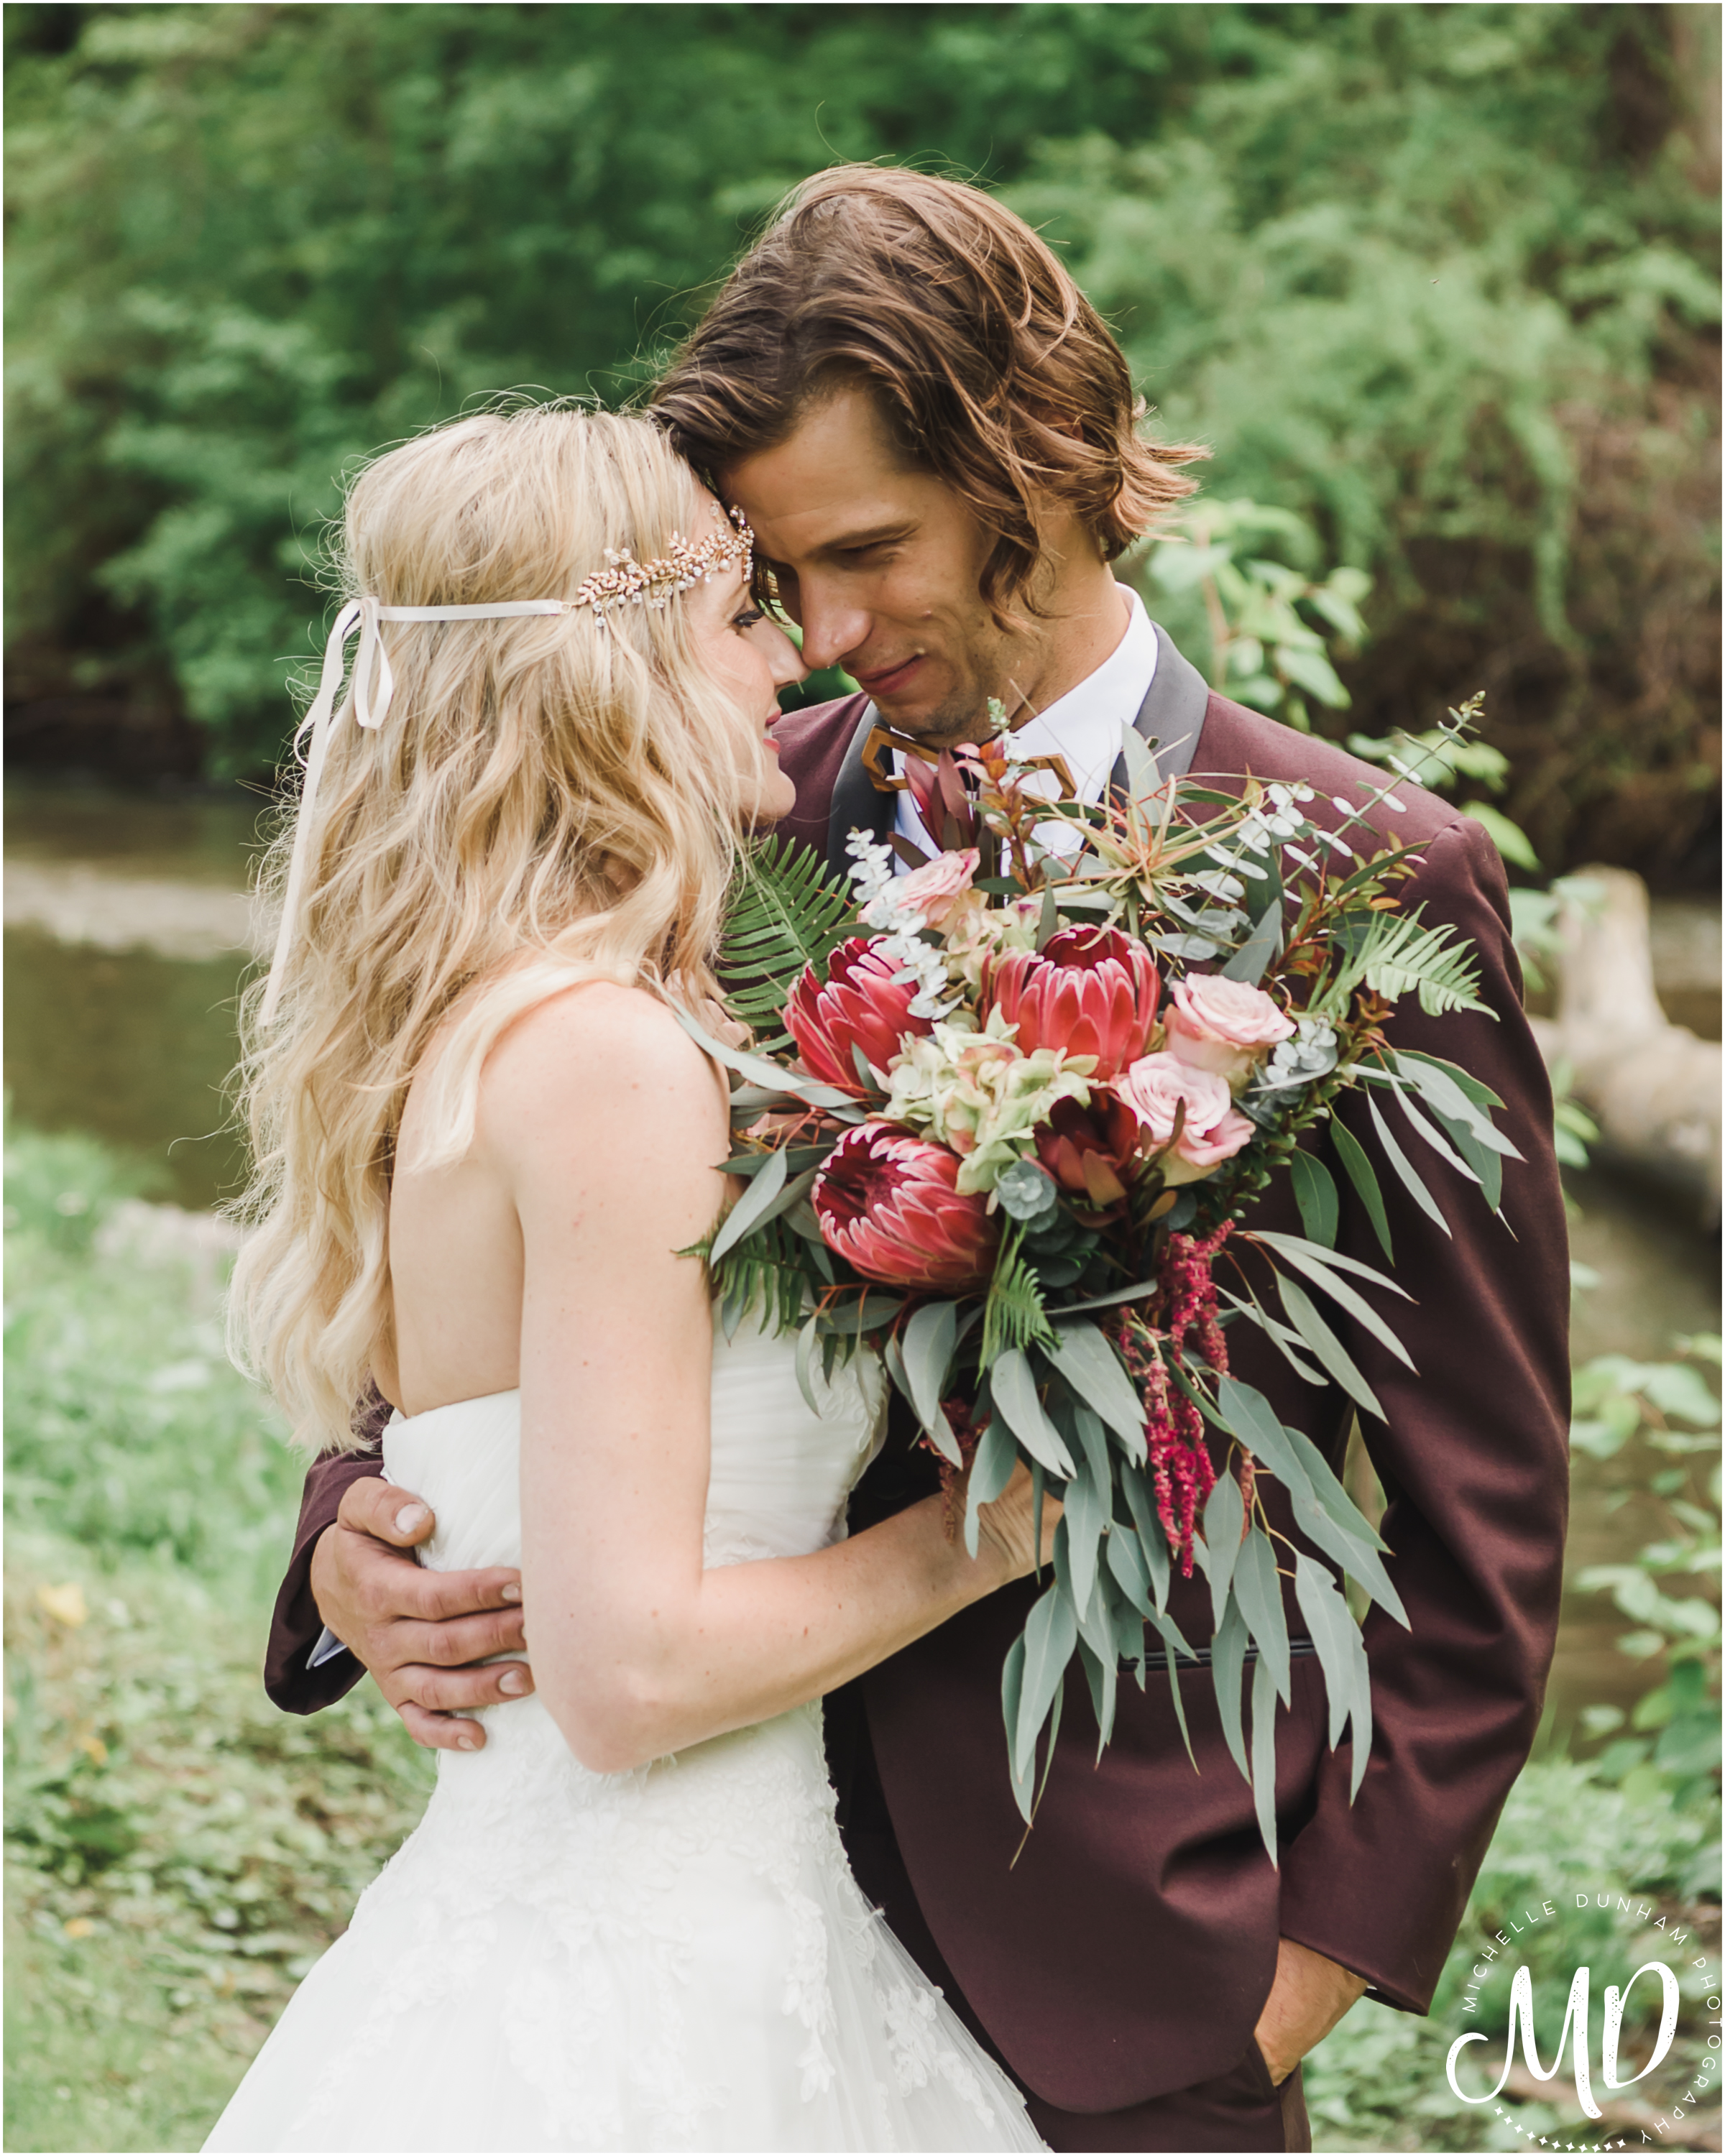 Michelle Dunham Photography_Boho_BrideandGroom_10.jpg